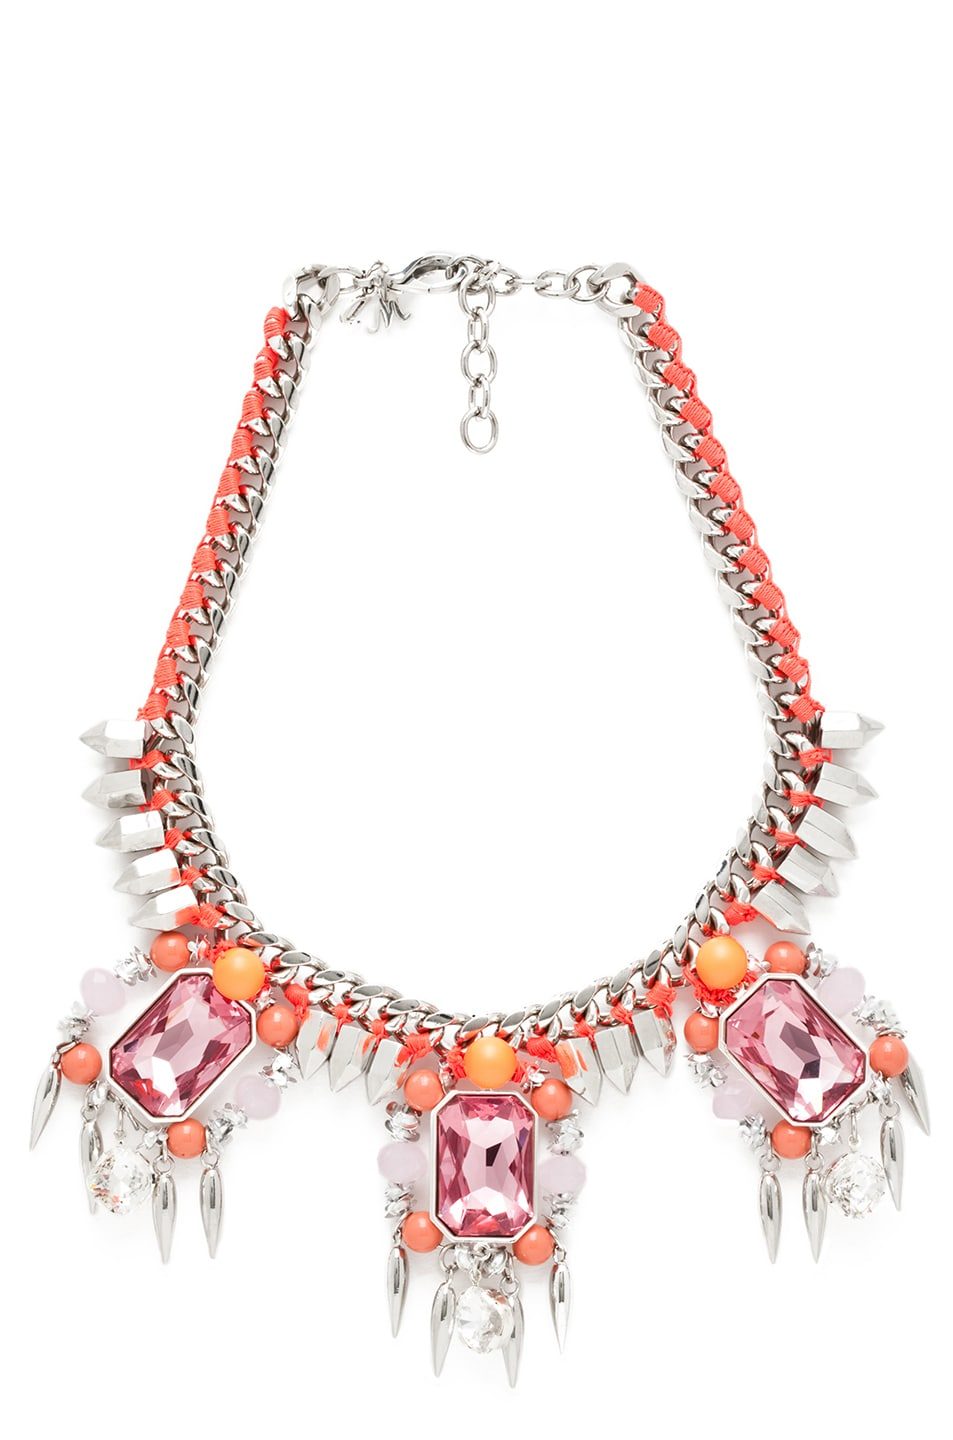 Image 1 of Assad Mounser Chroma Crypt Silver Plated Collar in Peach Neon